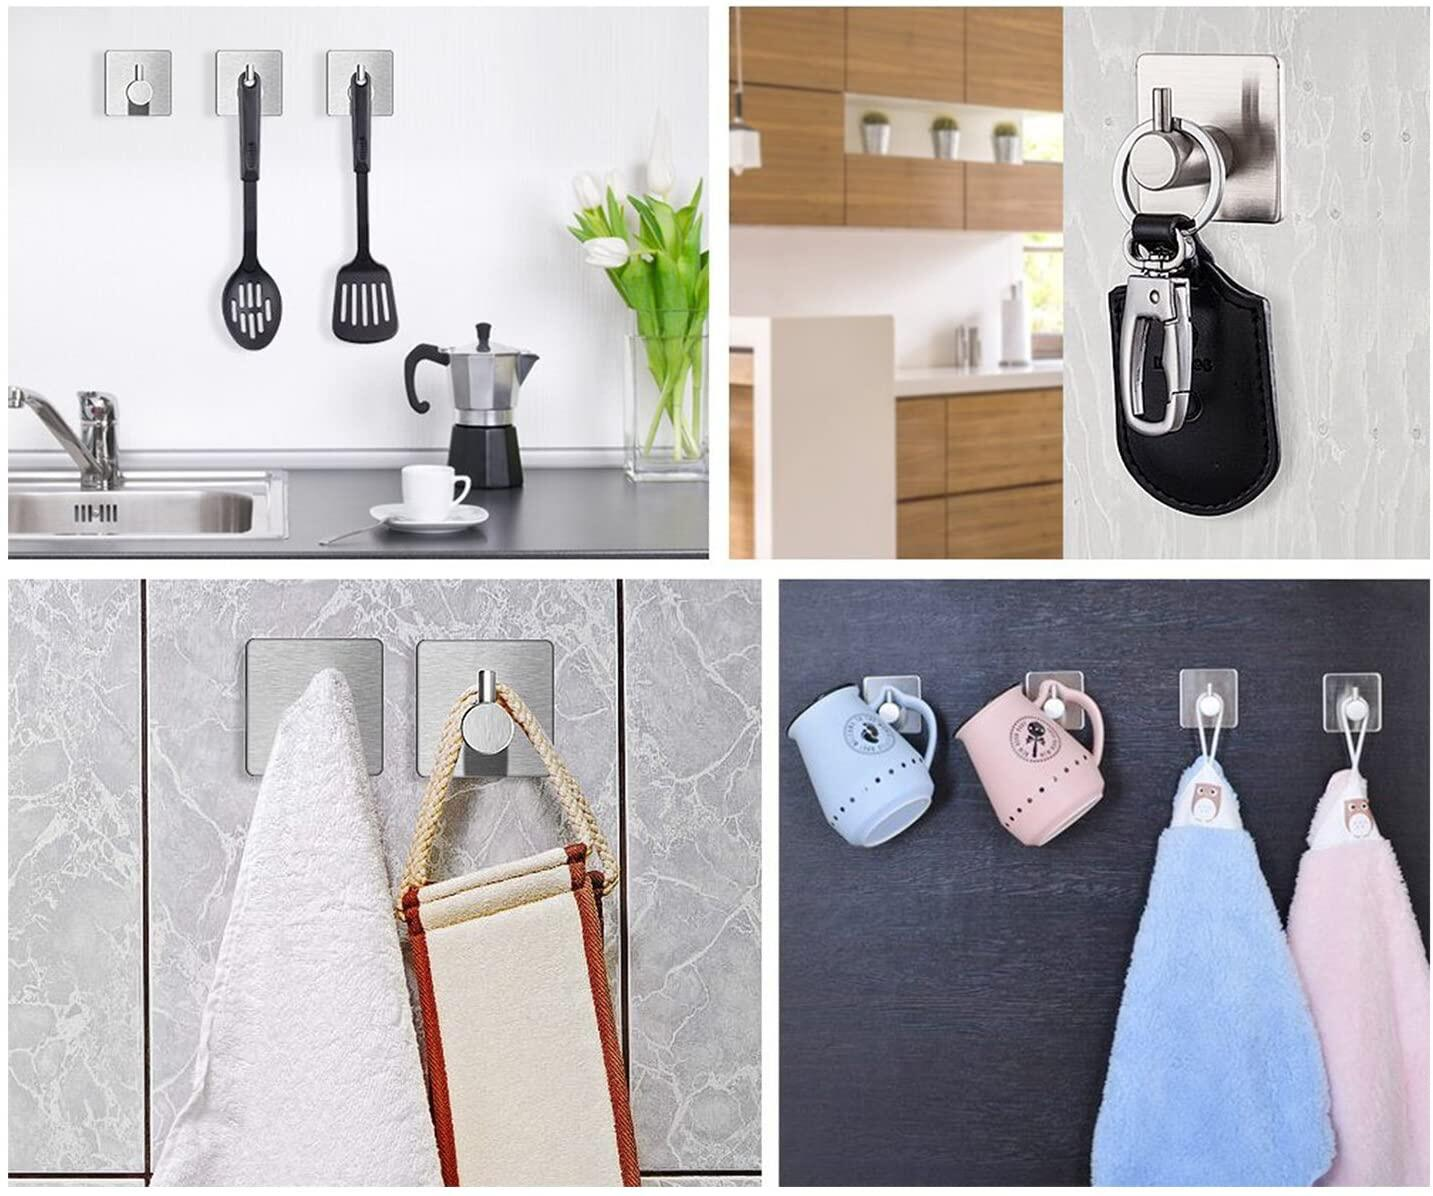 JS Self Adhesive Hooks, Kitchen/Bathrooms/Closet, Stick on Hooks Holder for Tea Towel Robe Coat, Stainless Steel Self Adhesive Towel Hooks,Waterproof and Rustproof, 4 Pack JS Self Adhesive Towel Hooks, Stainless Steel Self Adhesive Towel Hooks at smart-join.com Self Adhesive Towel Hooks